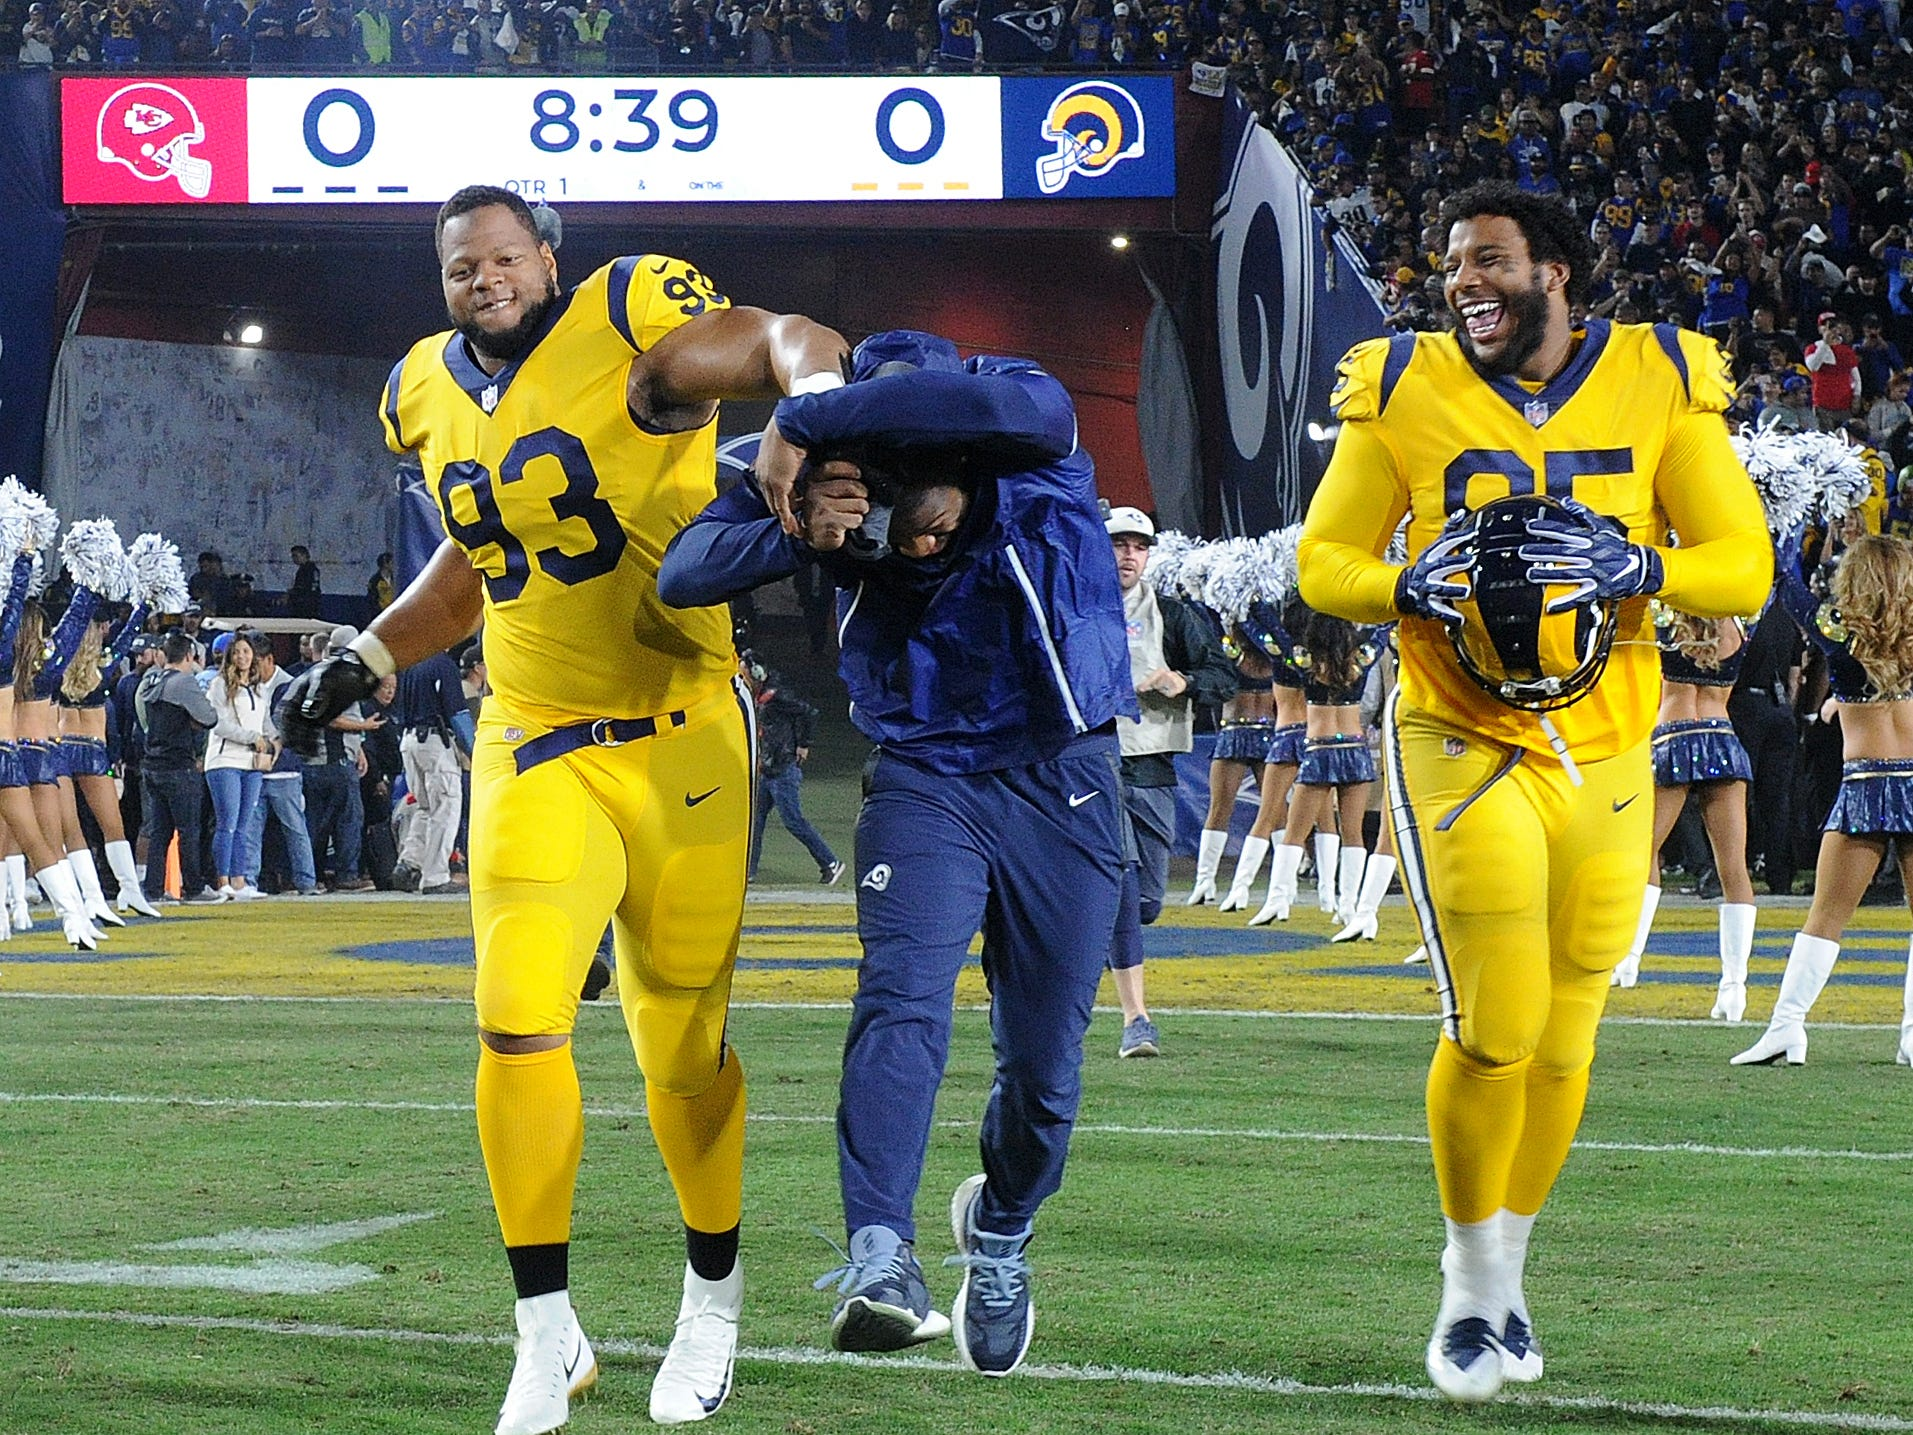 Thje Rams' Ndamukong Suh, left, and Ethan Westbrooks, right, joke around before the game against the Chiefs on Monday night.